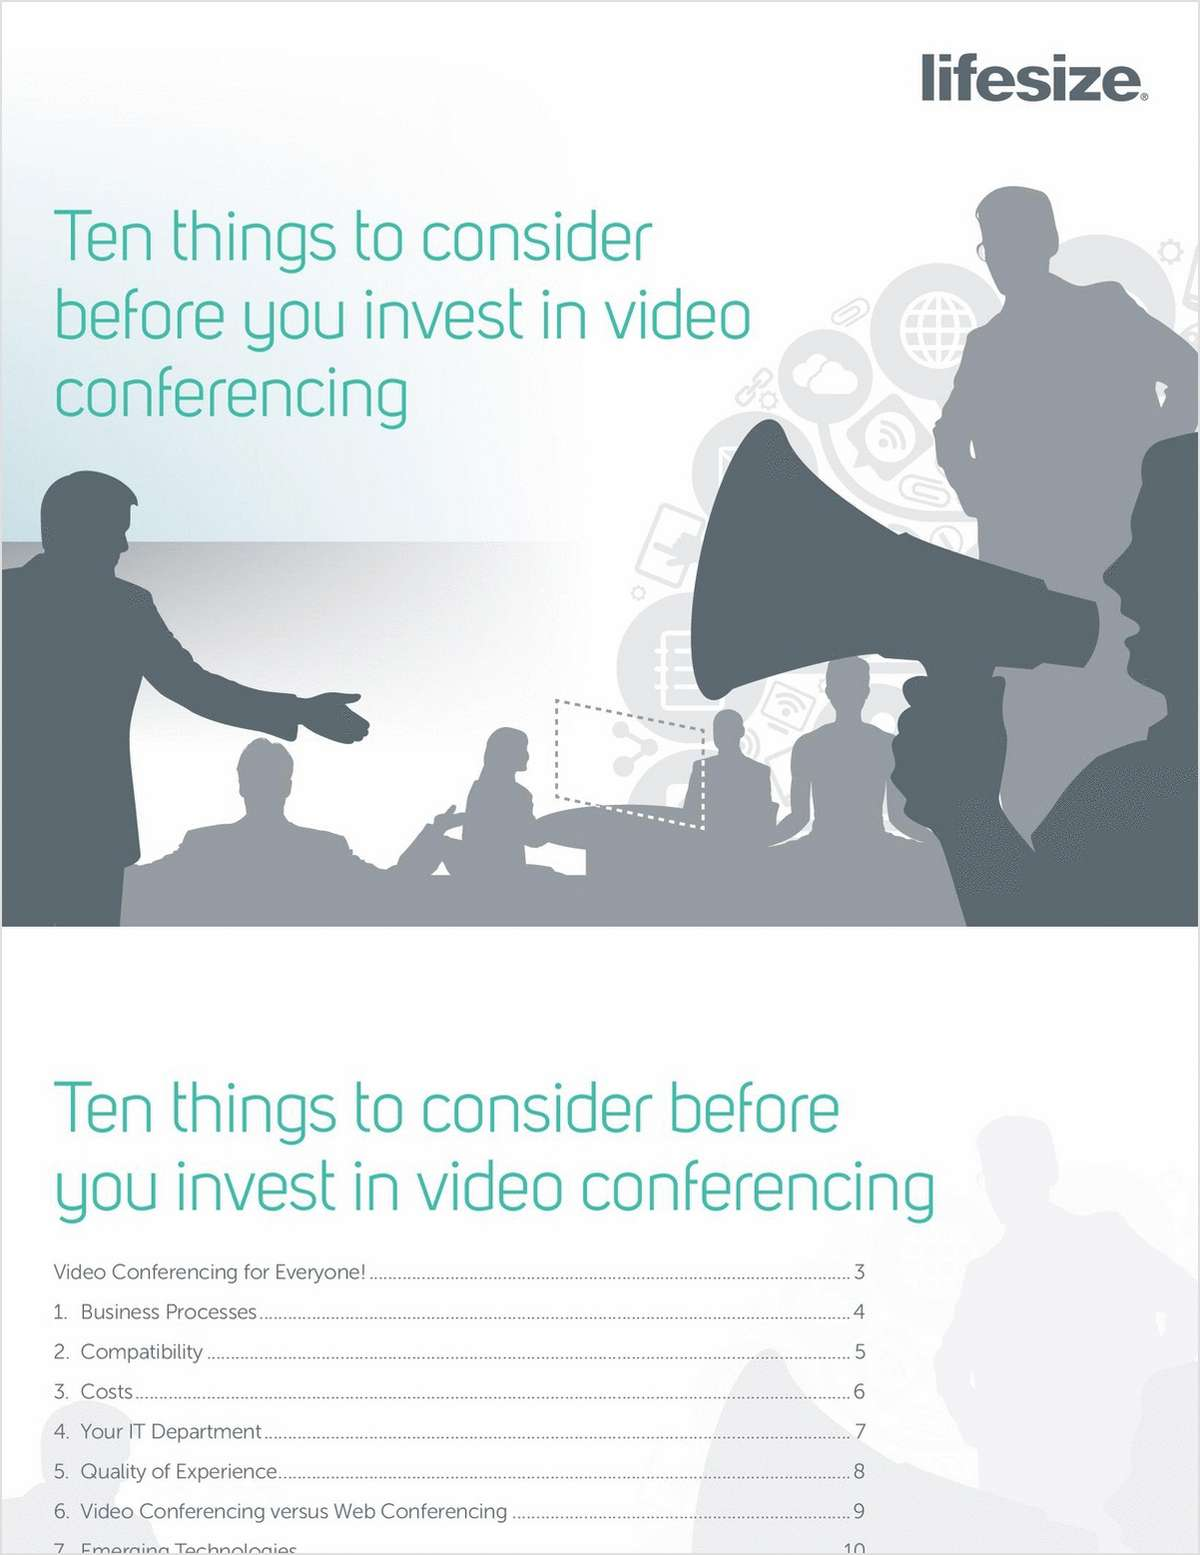 10 Things to Consider Before Investing in Video Conferencing